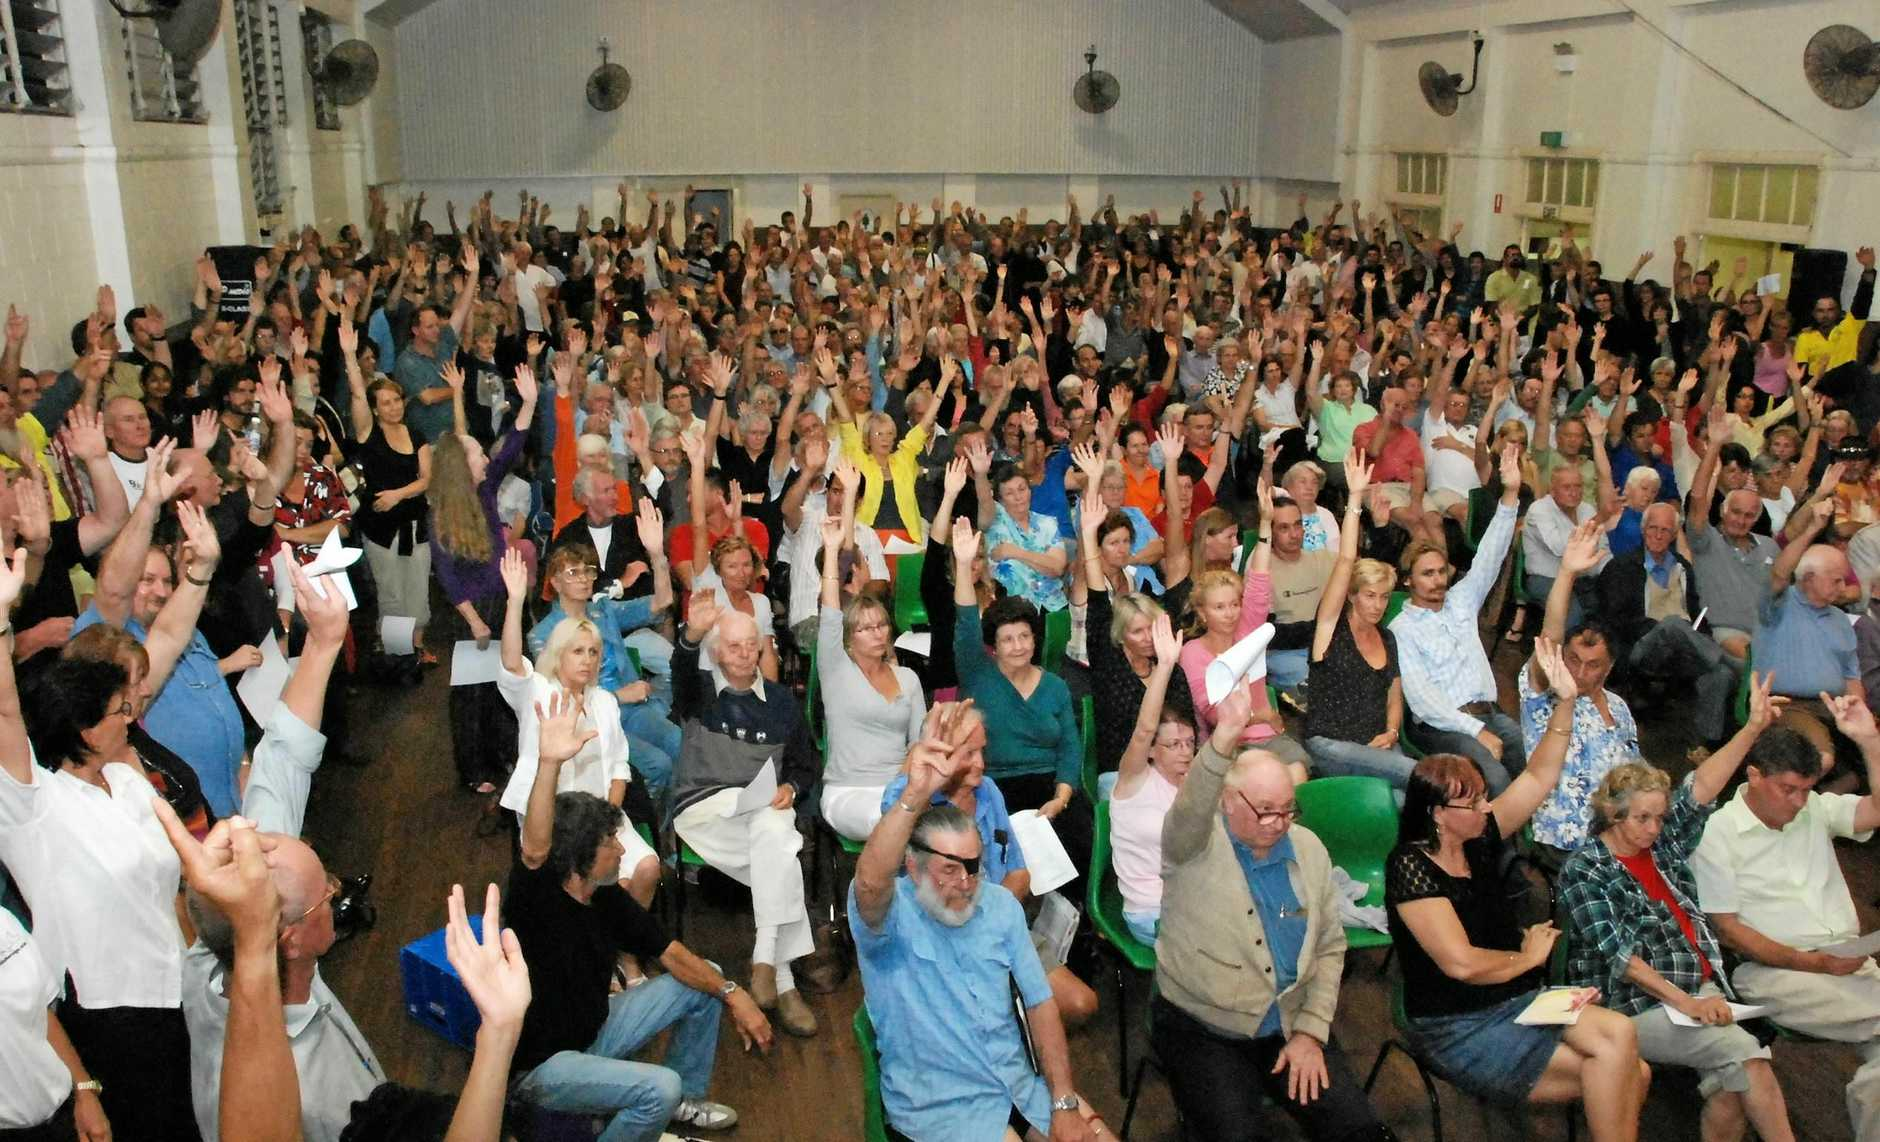 Mossman Shire Hall was a full house as Douglas residents turned out to show overwhelming approval for seeking de-amalgamation from Cairns Regional Council.